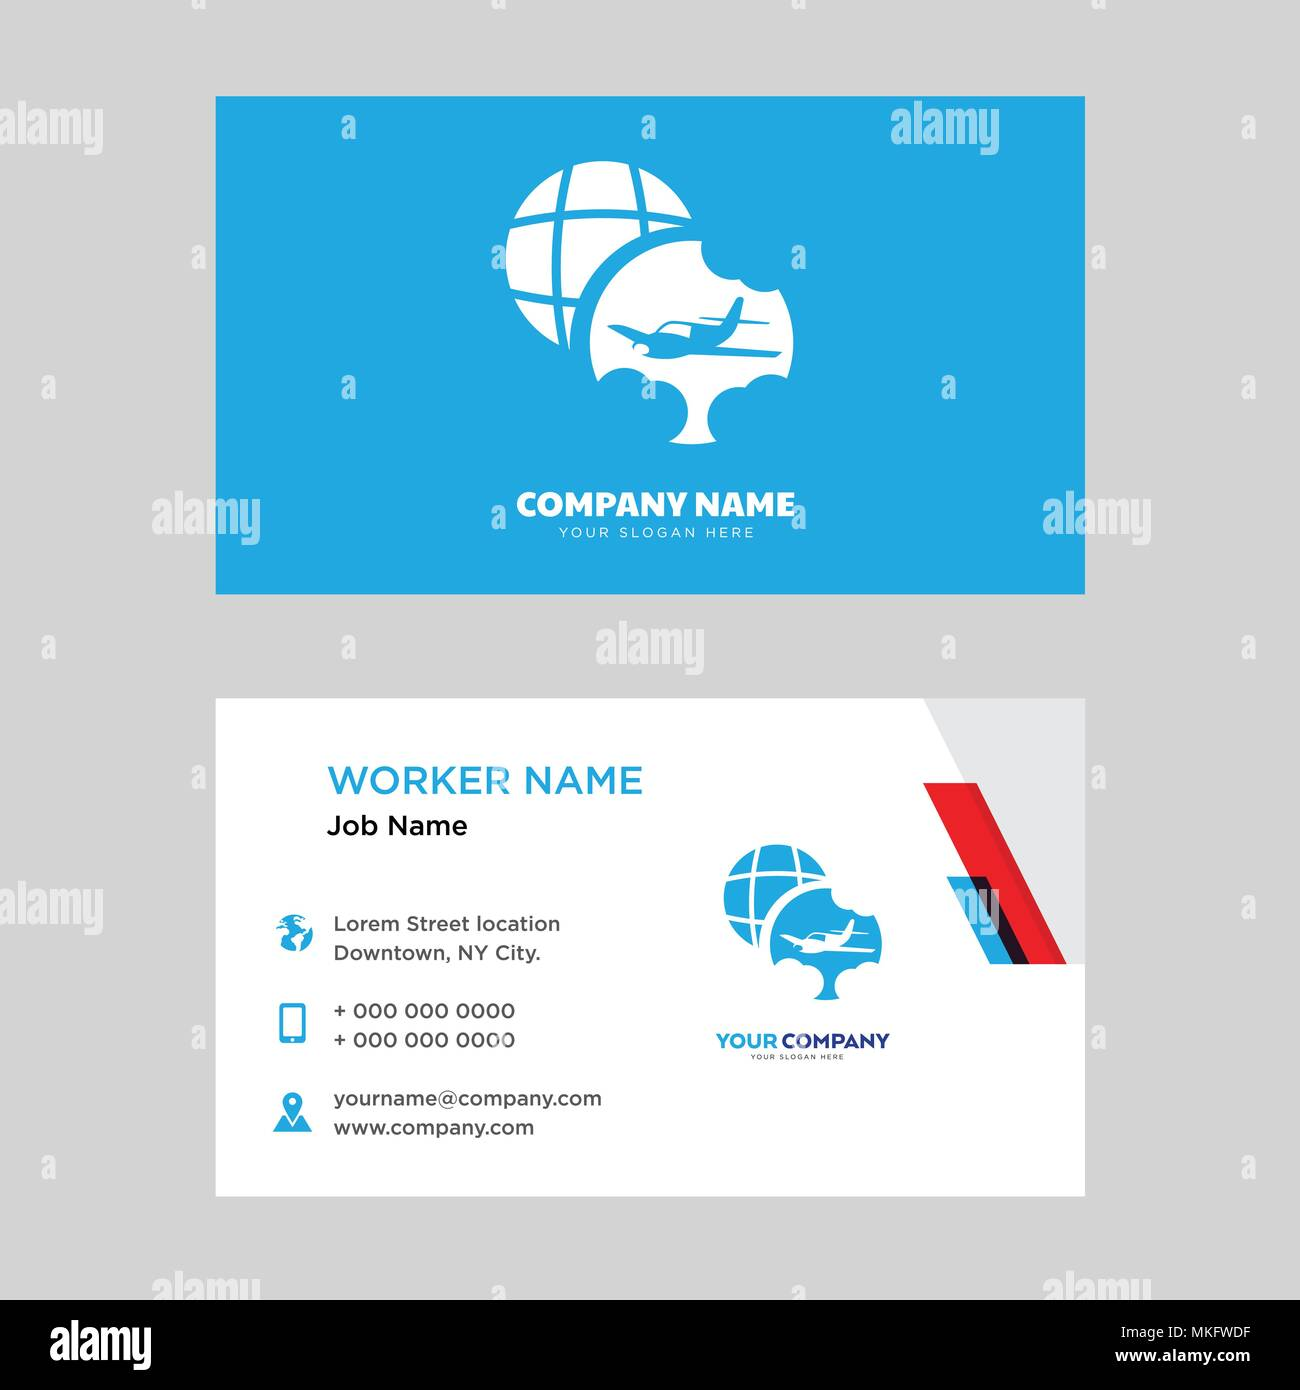 Travel business card design template visiting for your company travel business card design template visiting for your company modern horizontal identity card vector fbccfo Gallery